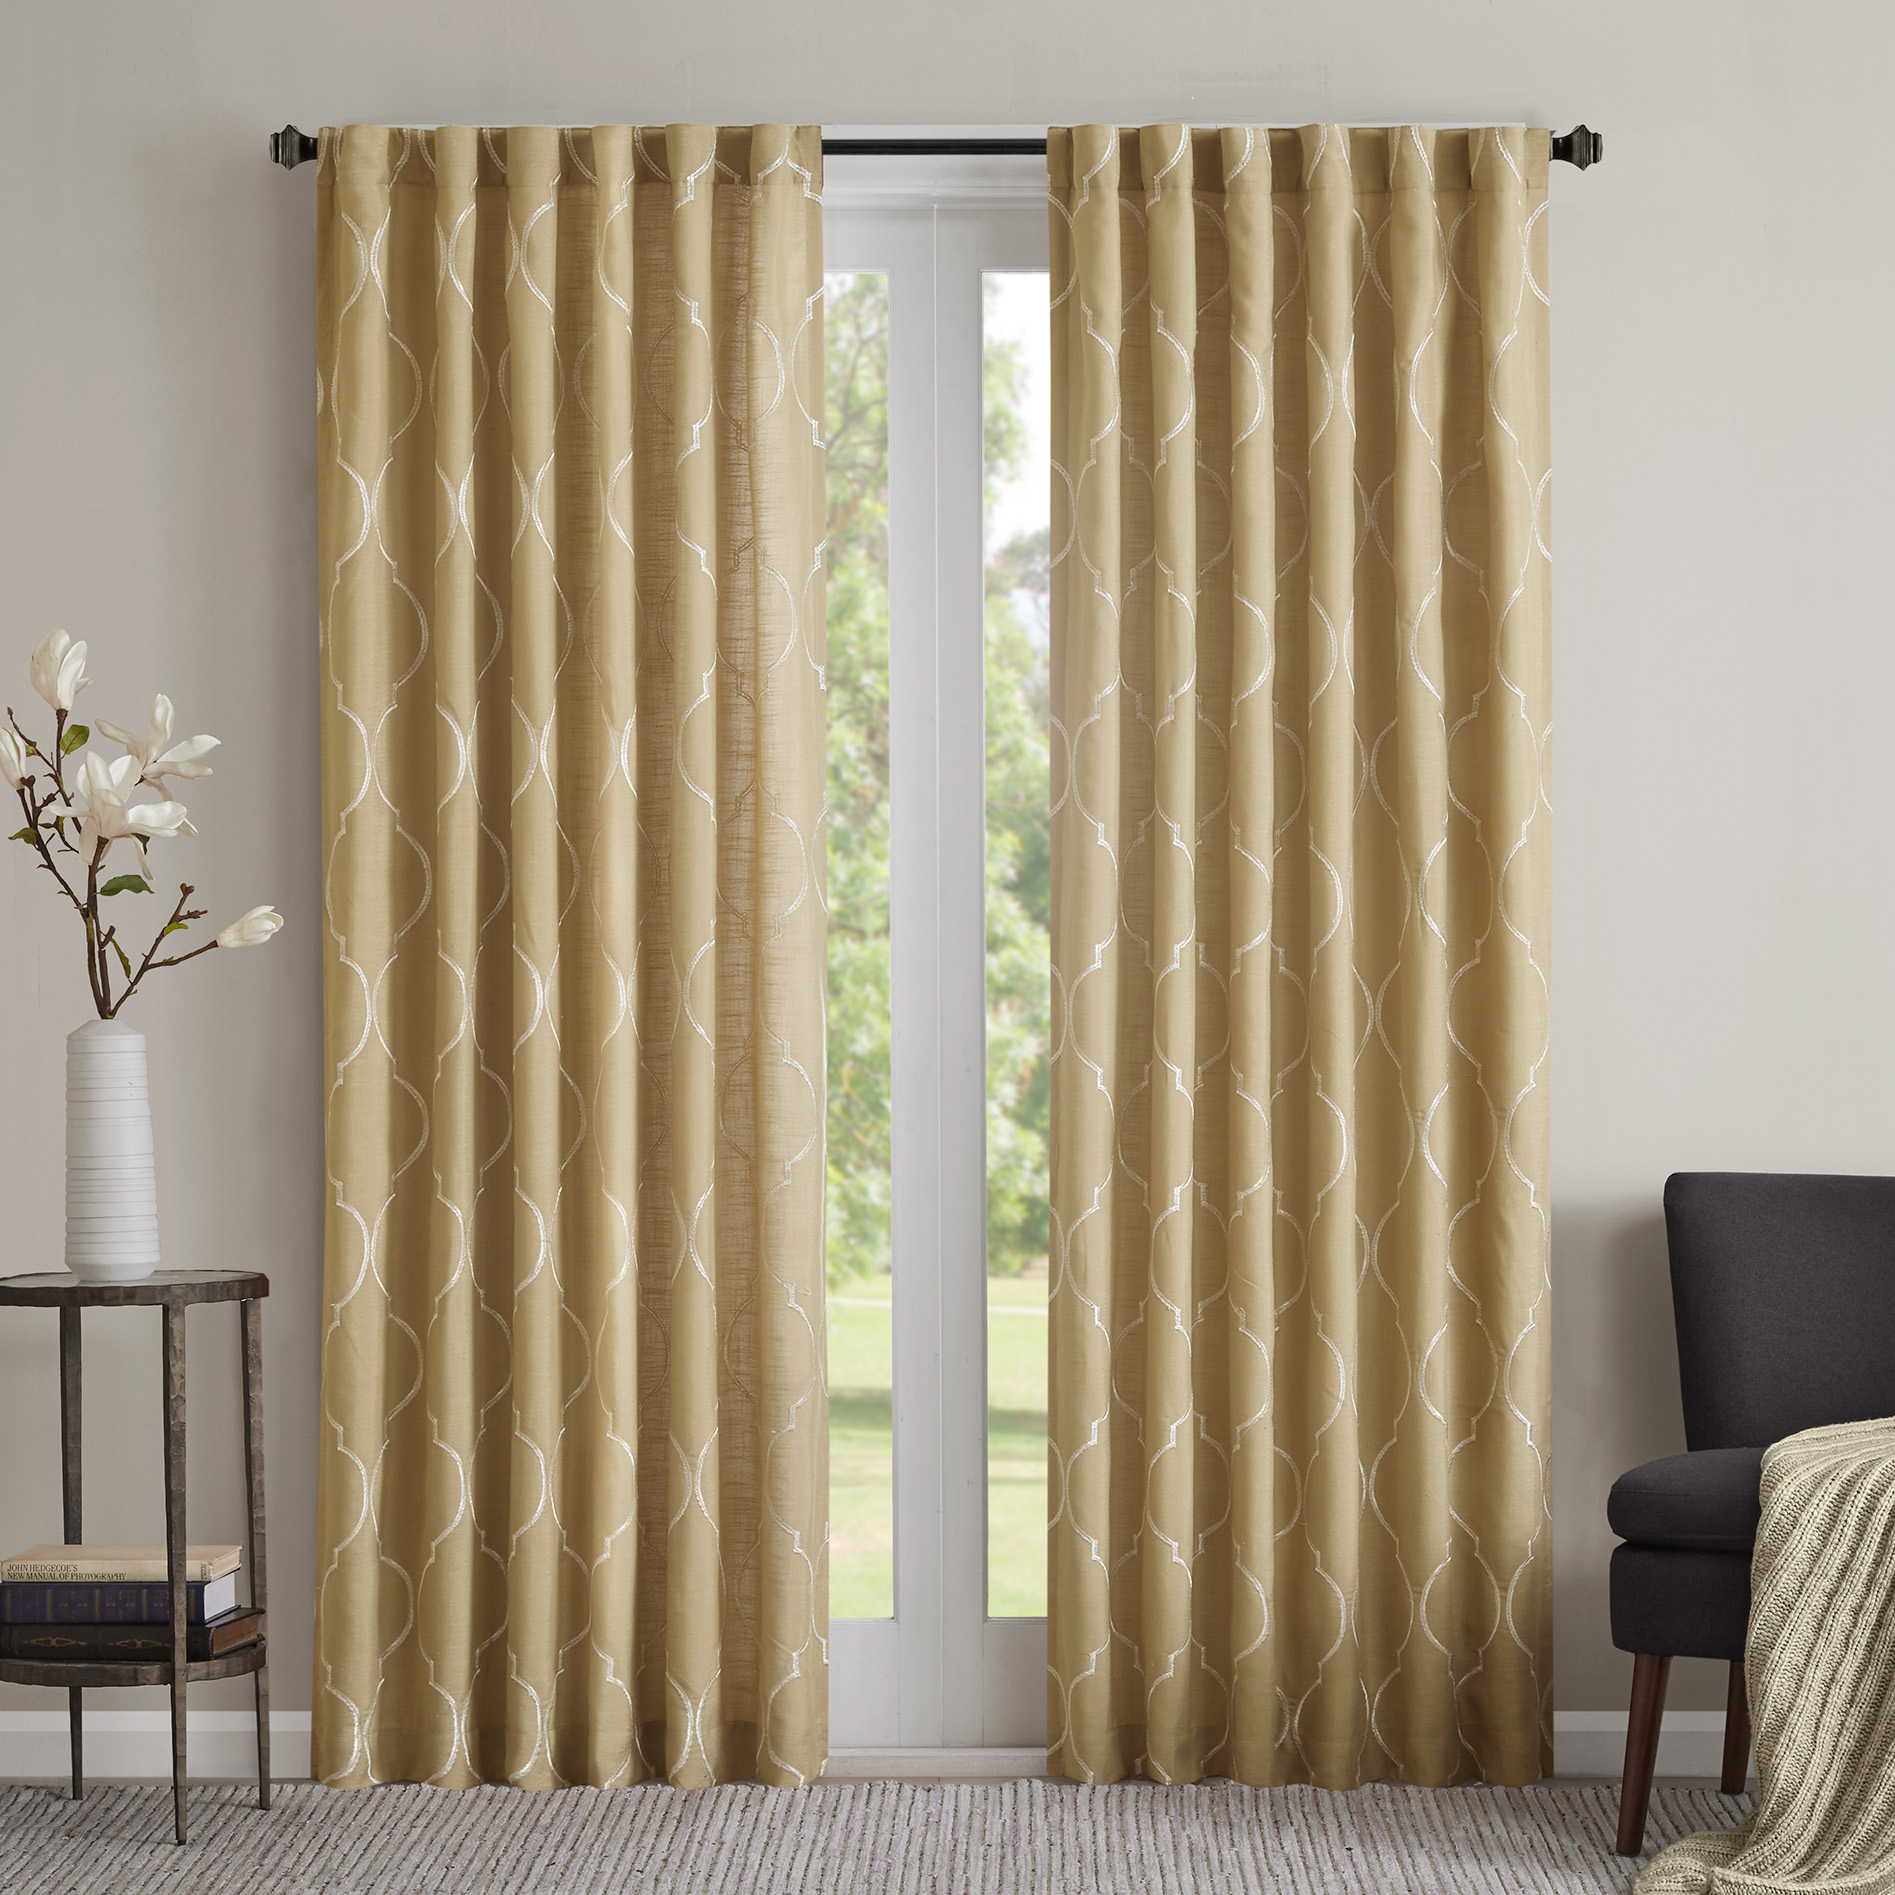 Madison Park - Lexi Window Curtain Panel - Yellow - 50x84